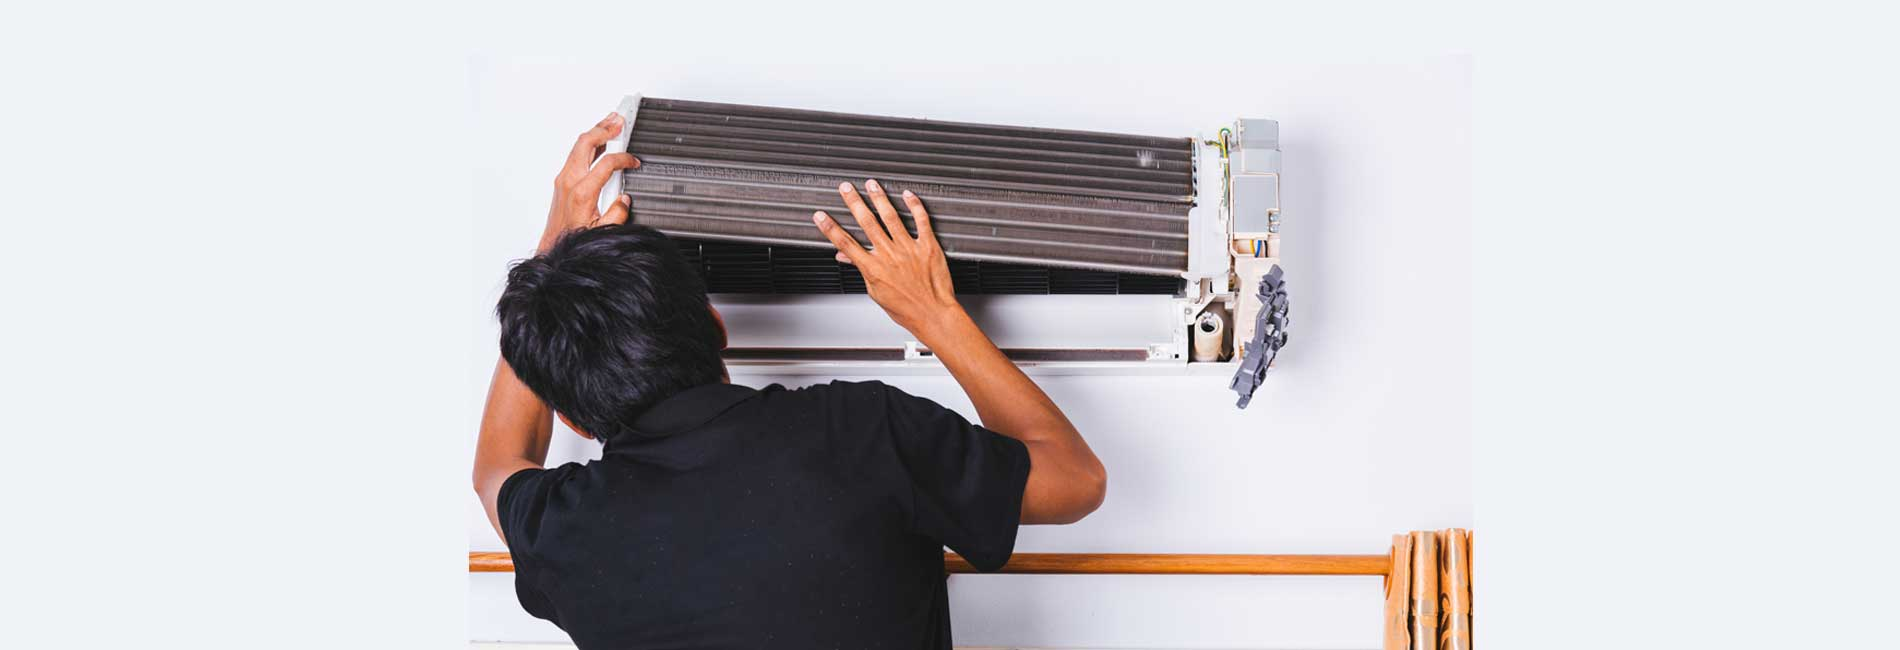 LG Split AC Uninstallation in Pammal